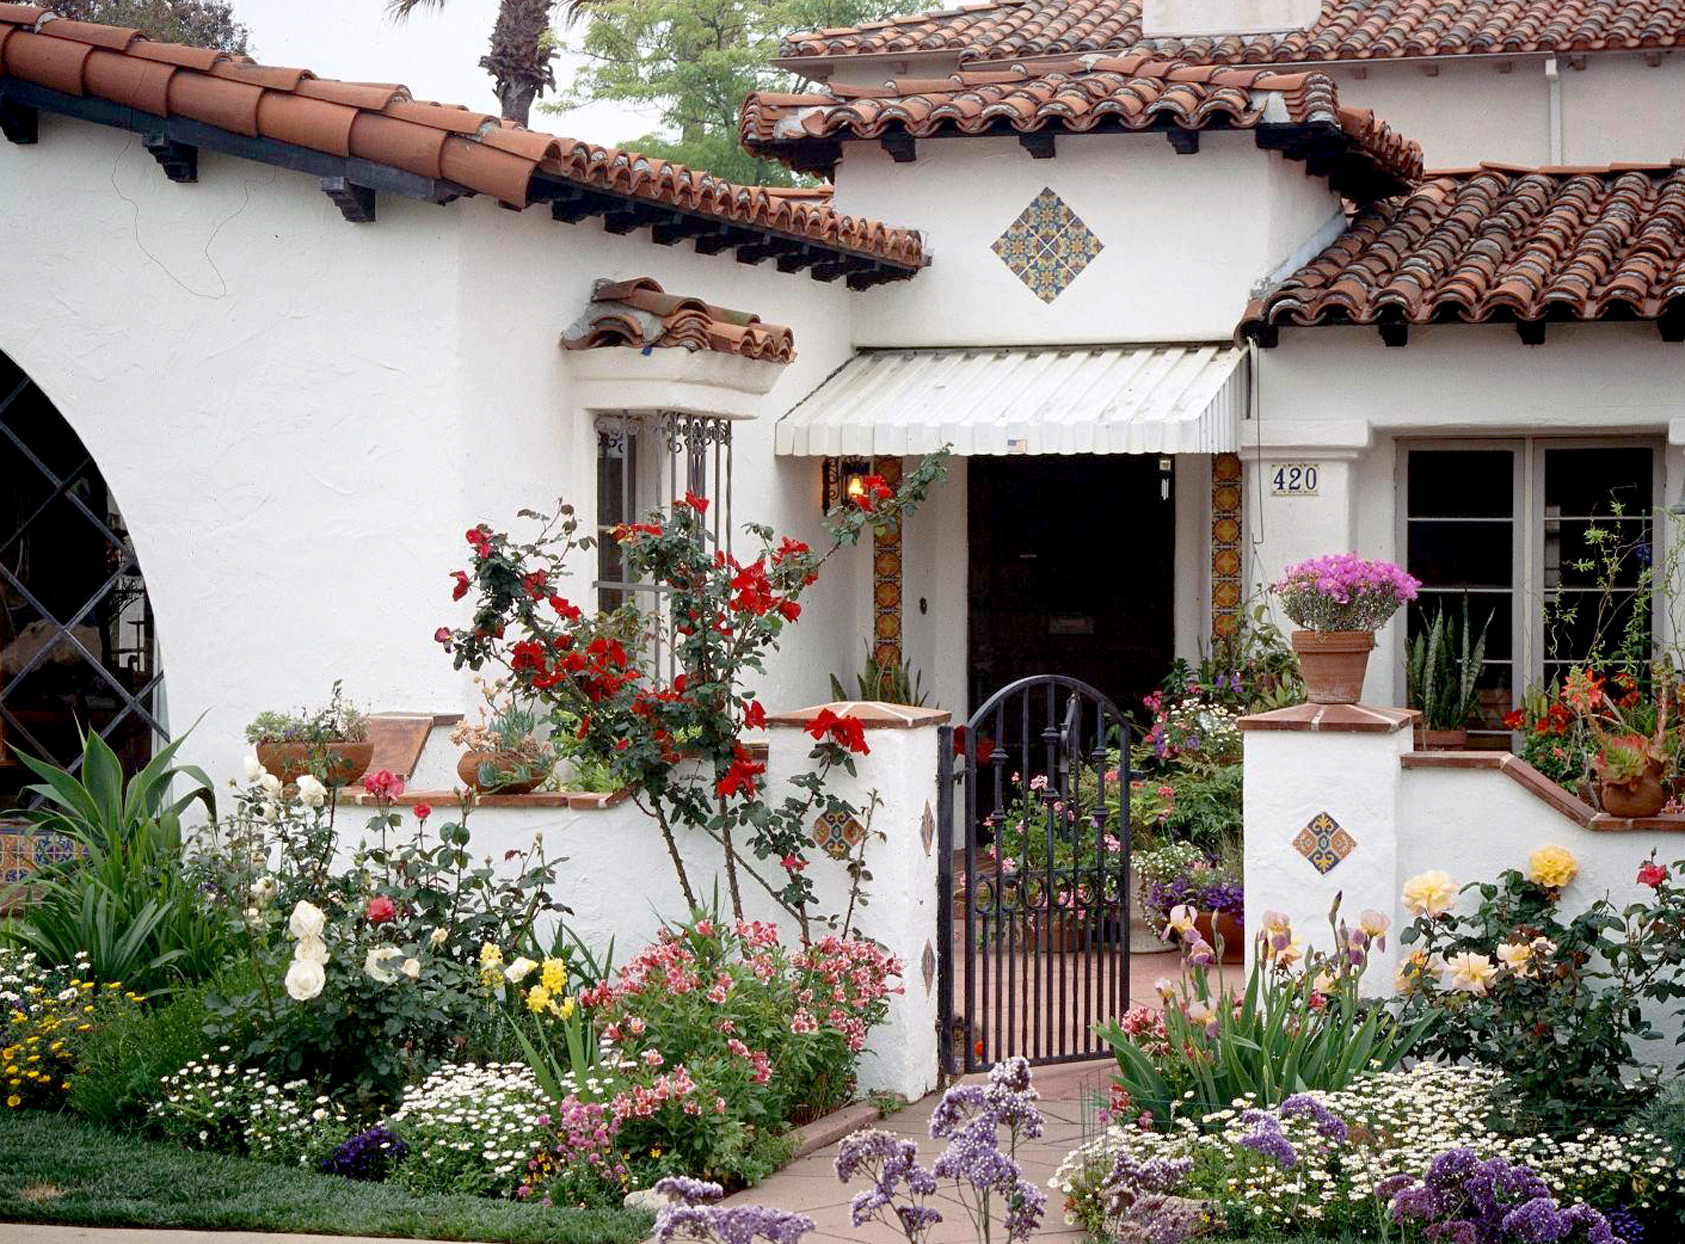 Mediterranean-inspired home with intricate tilework